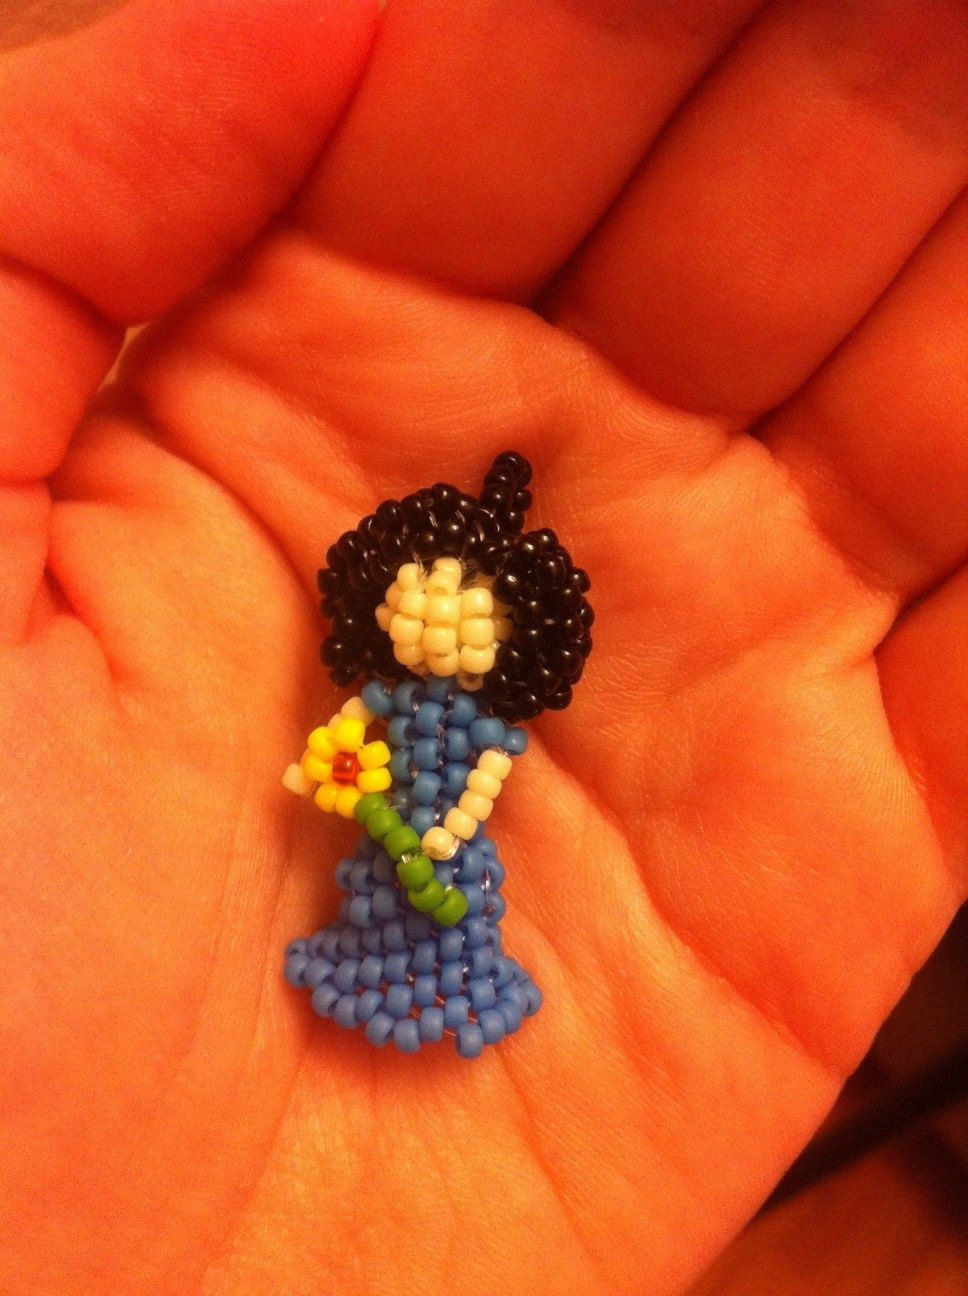 Seed Bead Girl Doll Pendant Choker Necklace with Blue Dress, Black Hair and a Yellow Flower Beaded Bead. $16.00, via Etsy.